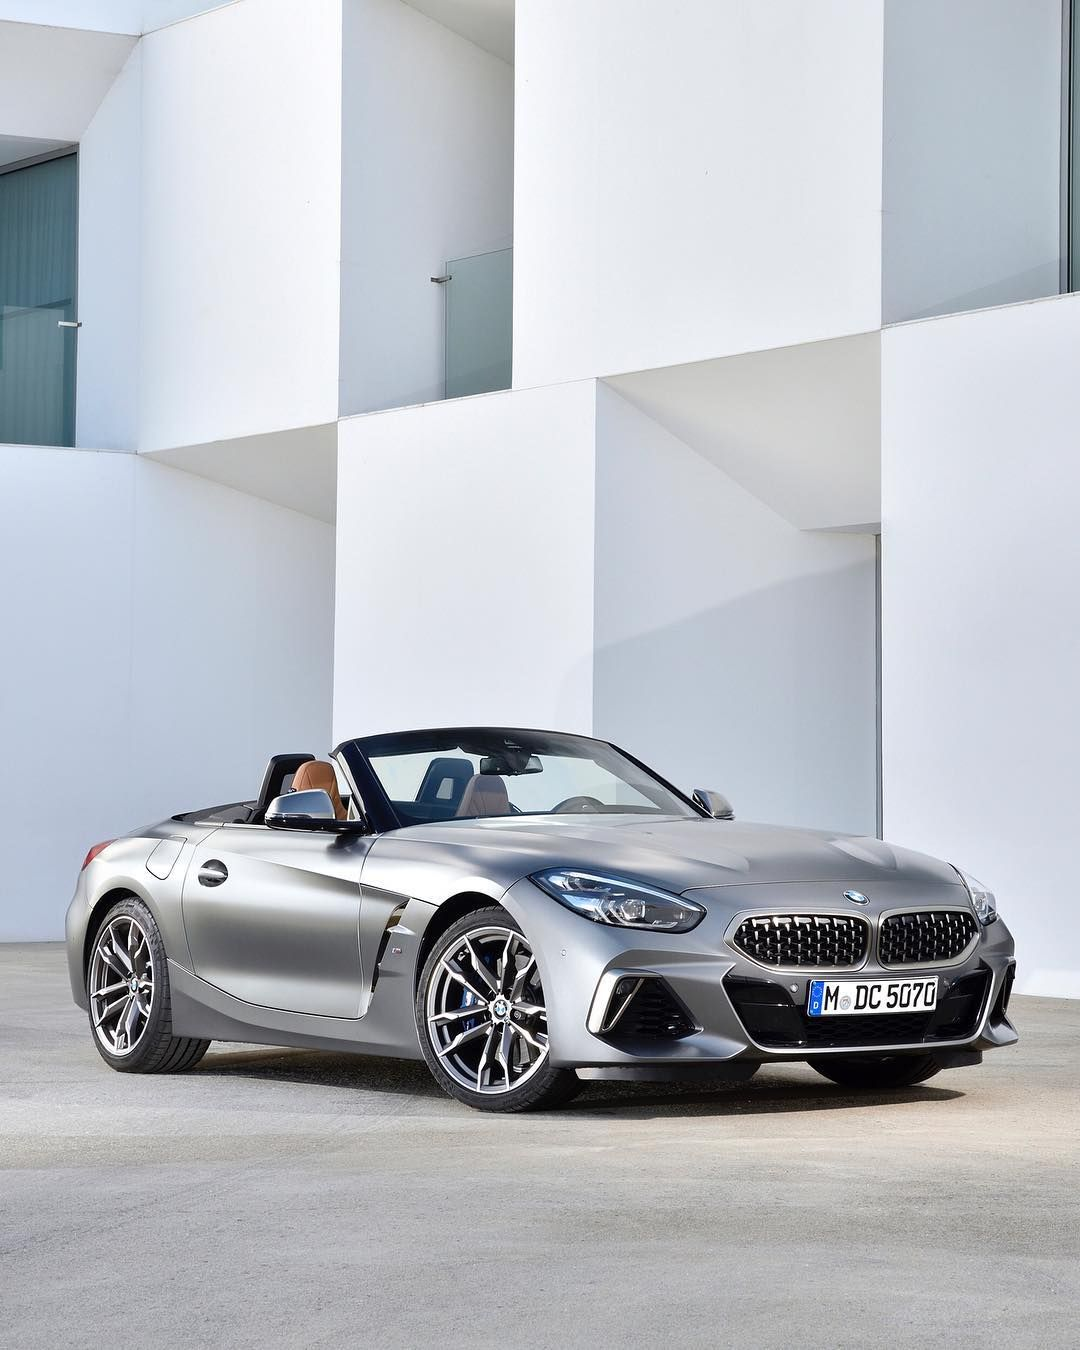 New Bmw Z4: In Love With Classic Lines. The All-new BMW Z4 Roadster